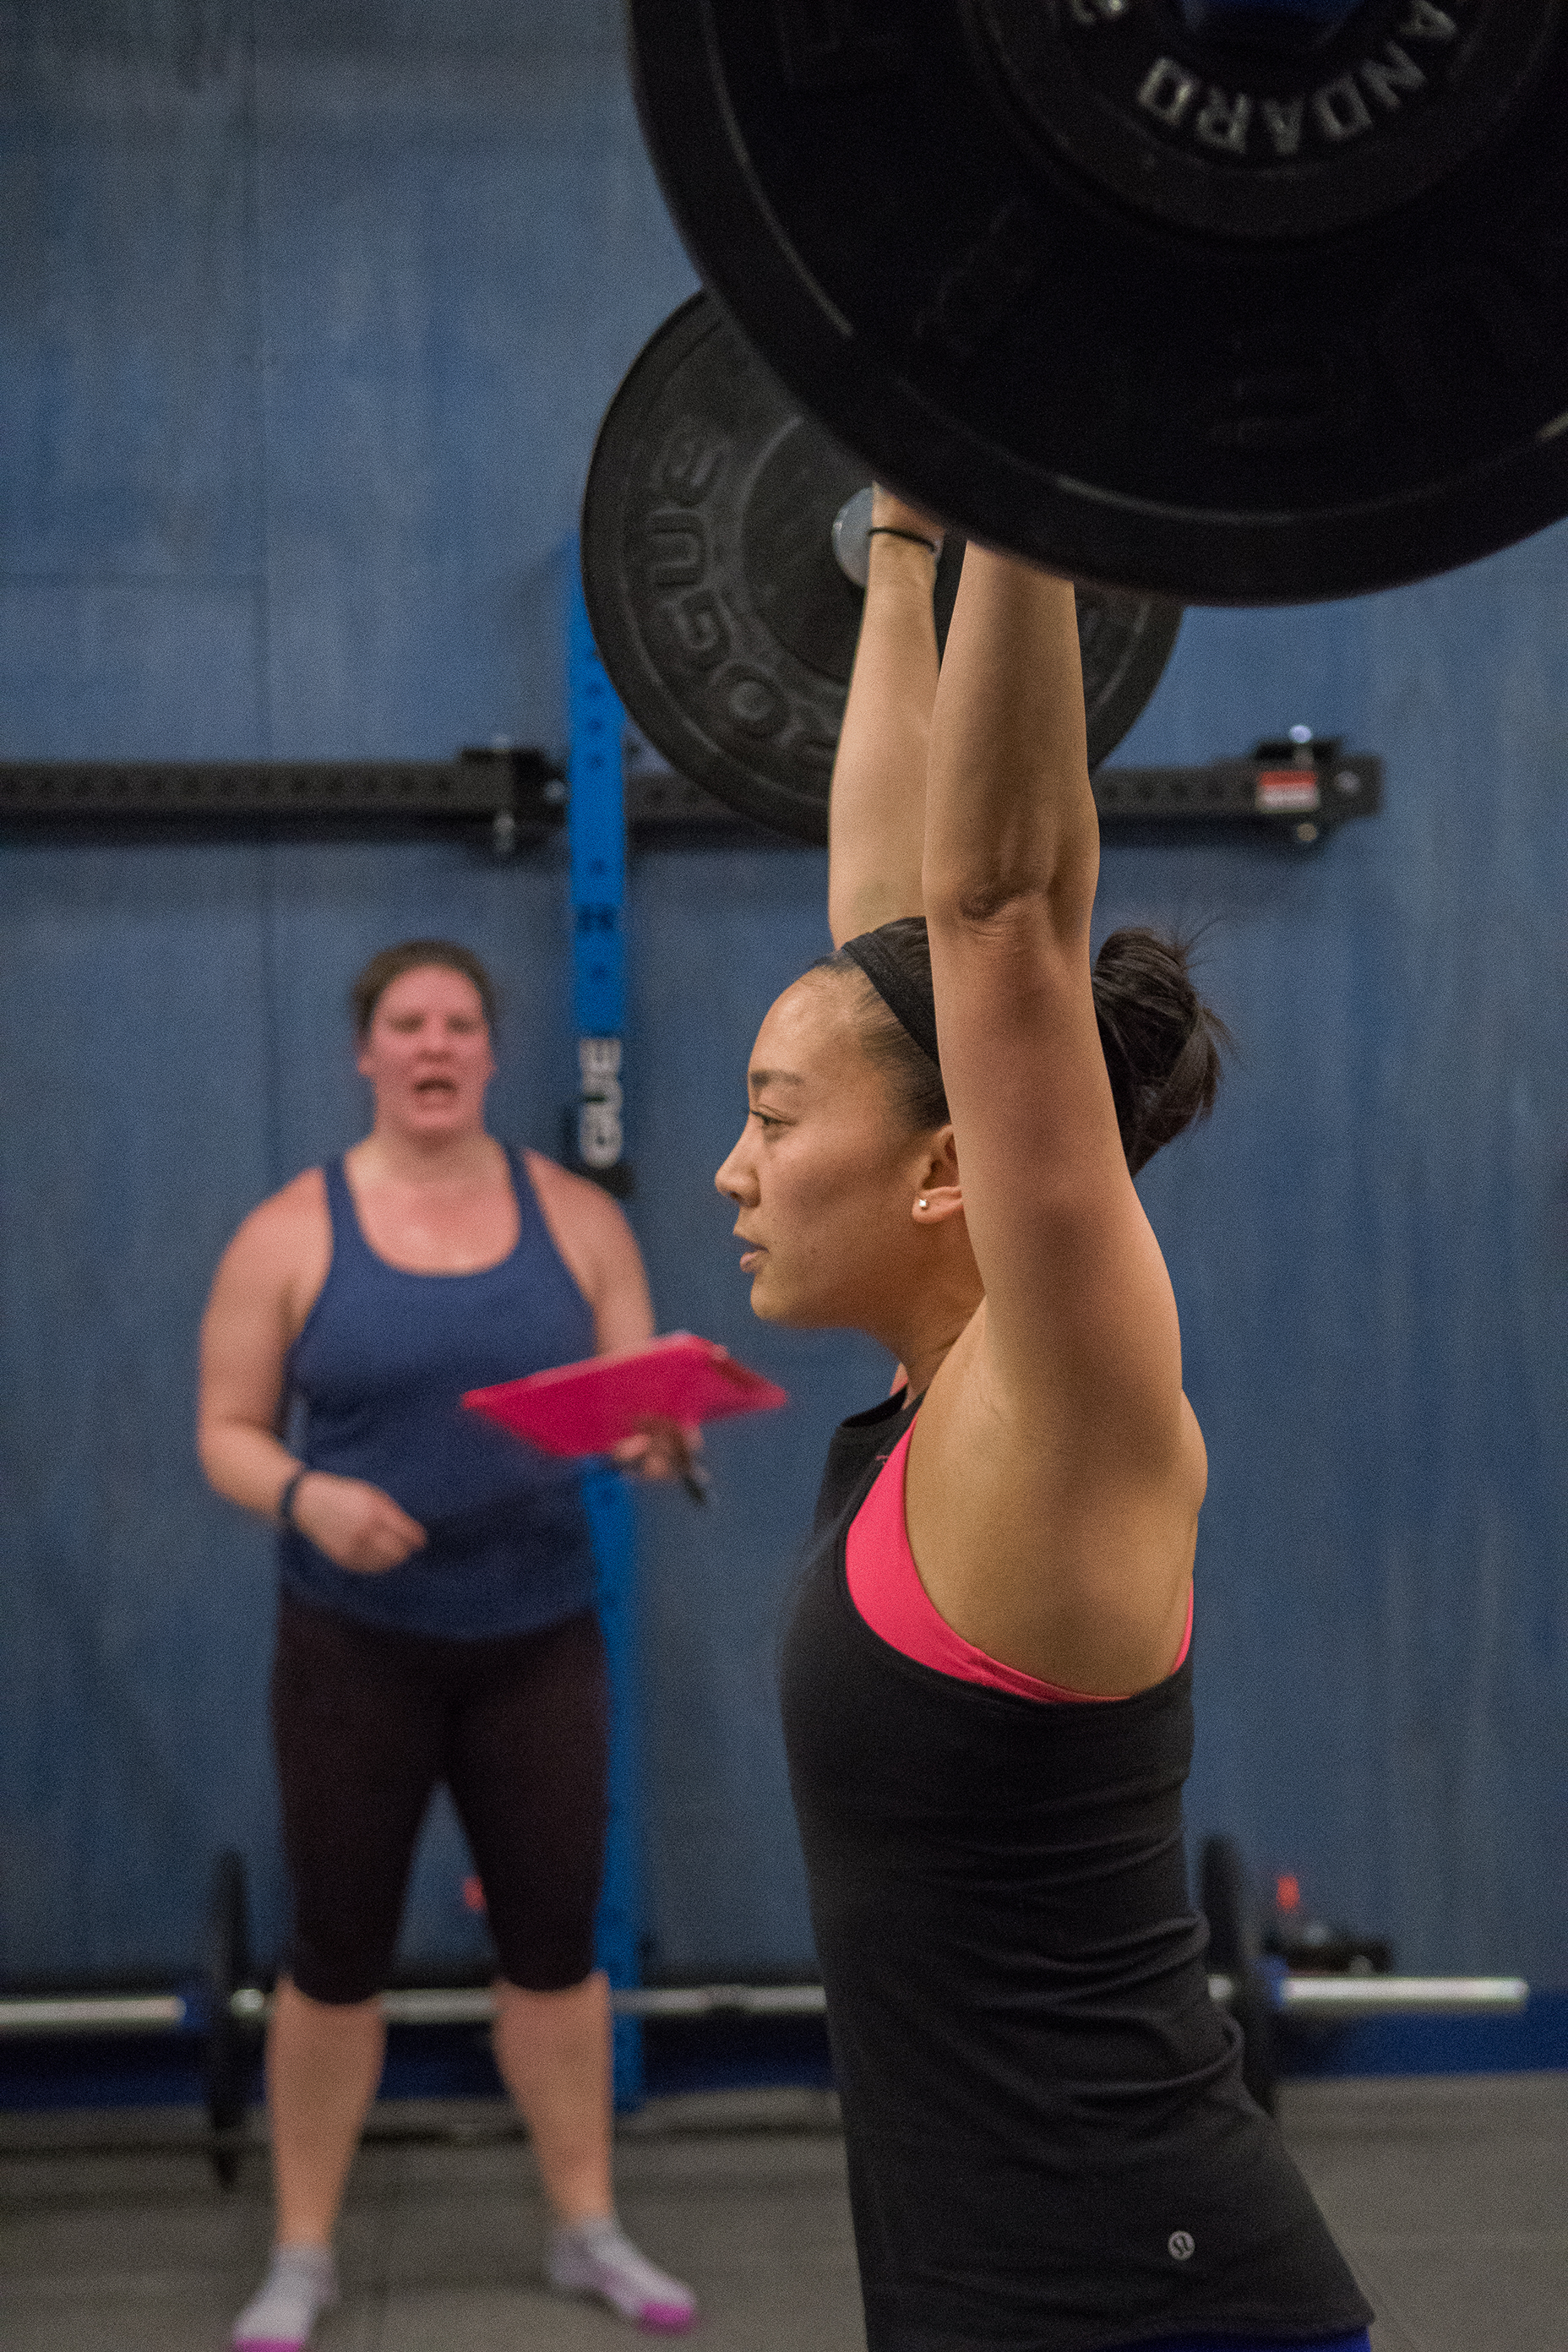 ICE NYC CrossFit Open 17.5 @martsromero - Quick Selects 021 20170324.jpg